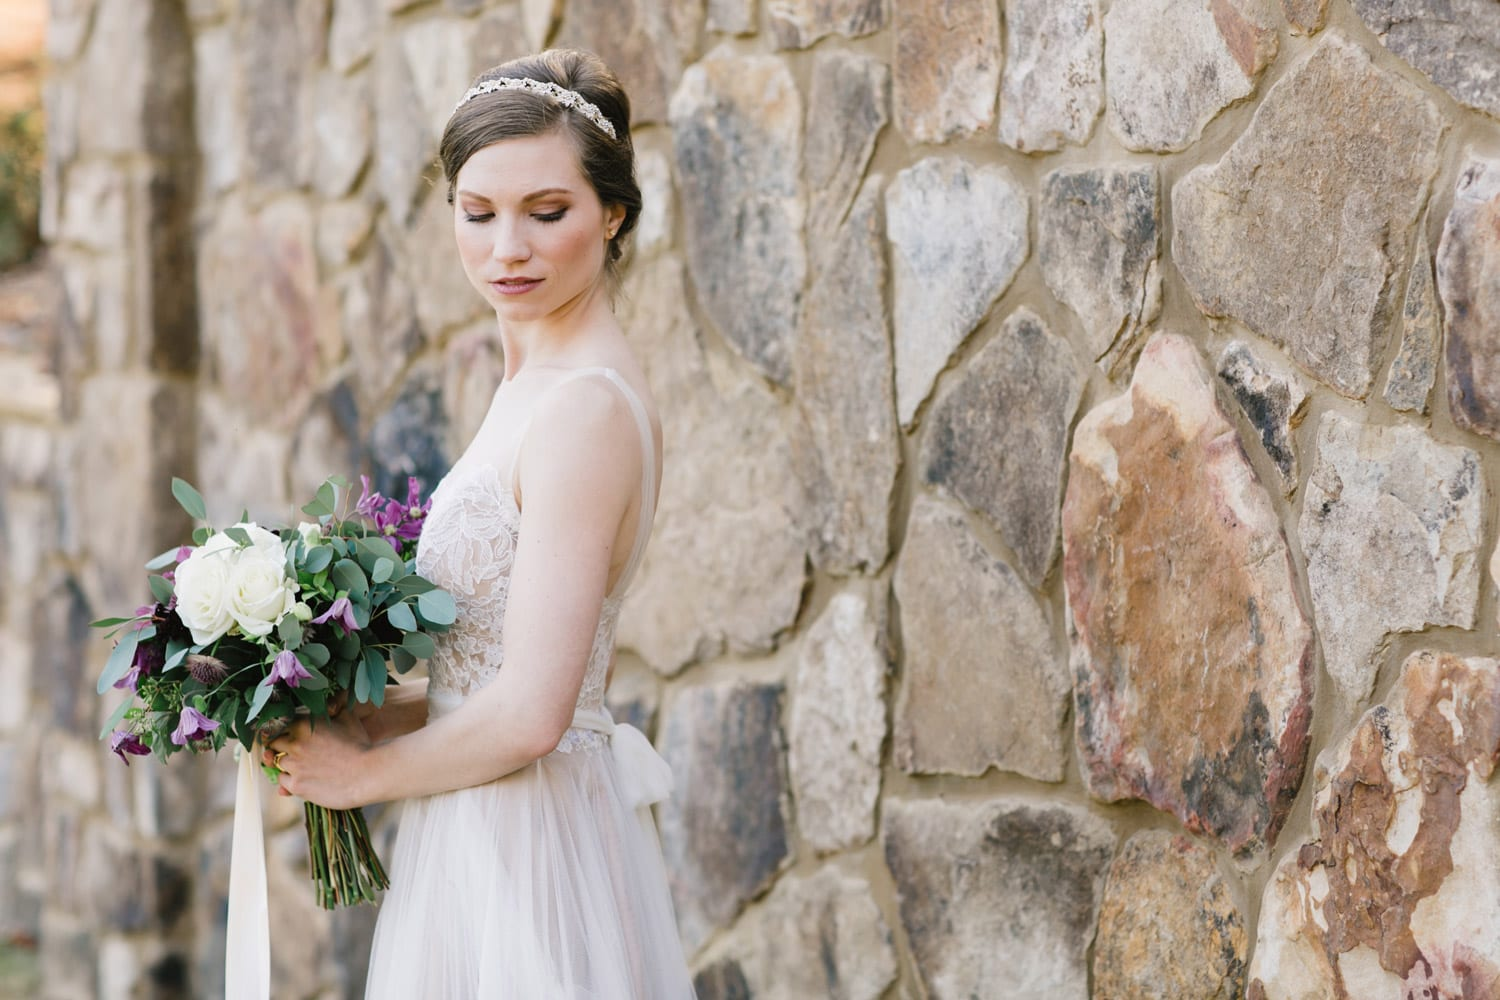 Bride poses with flowers in front of stone wall